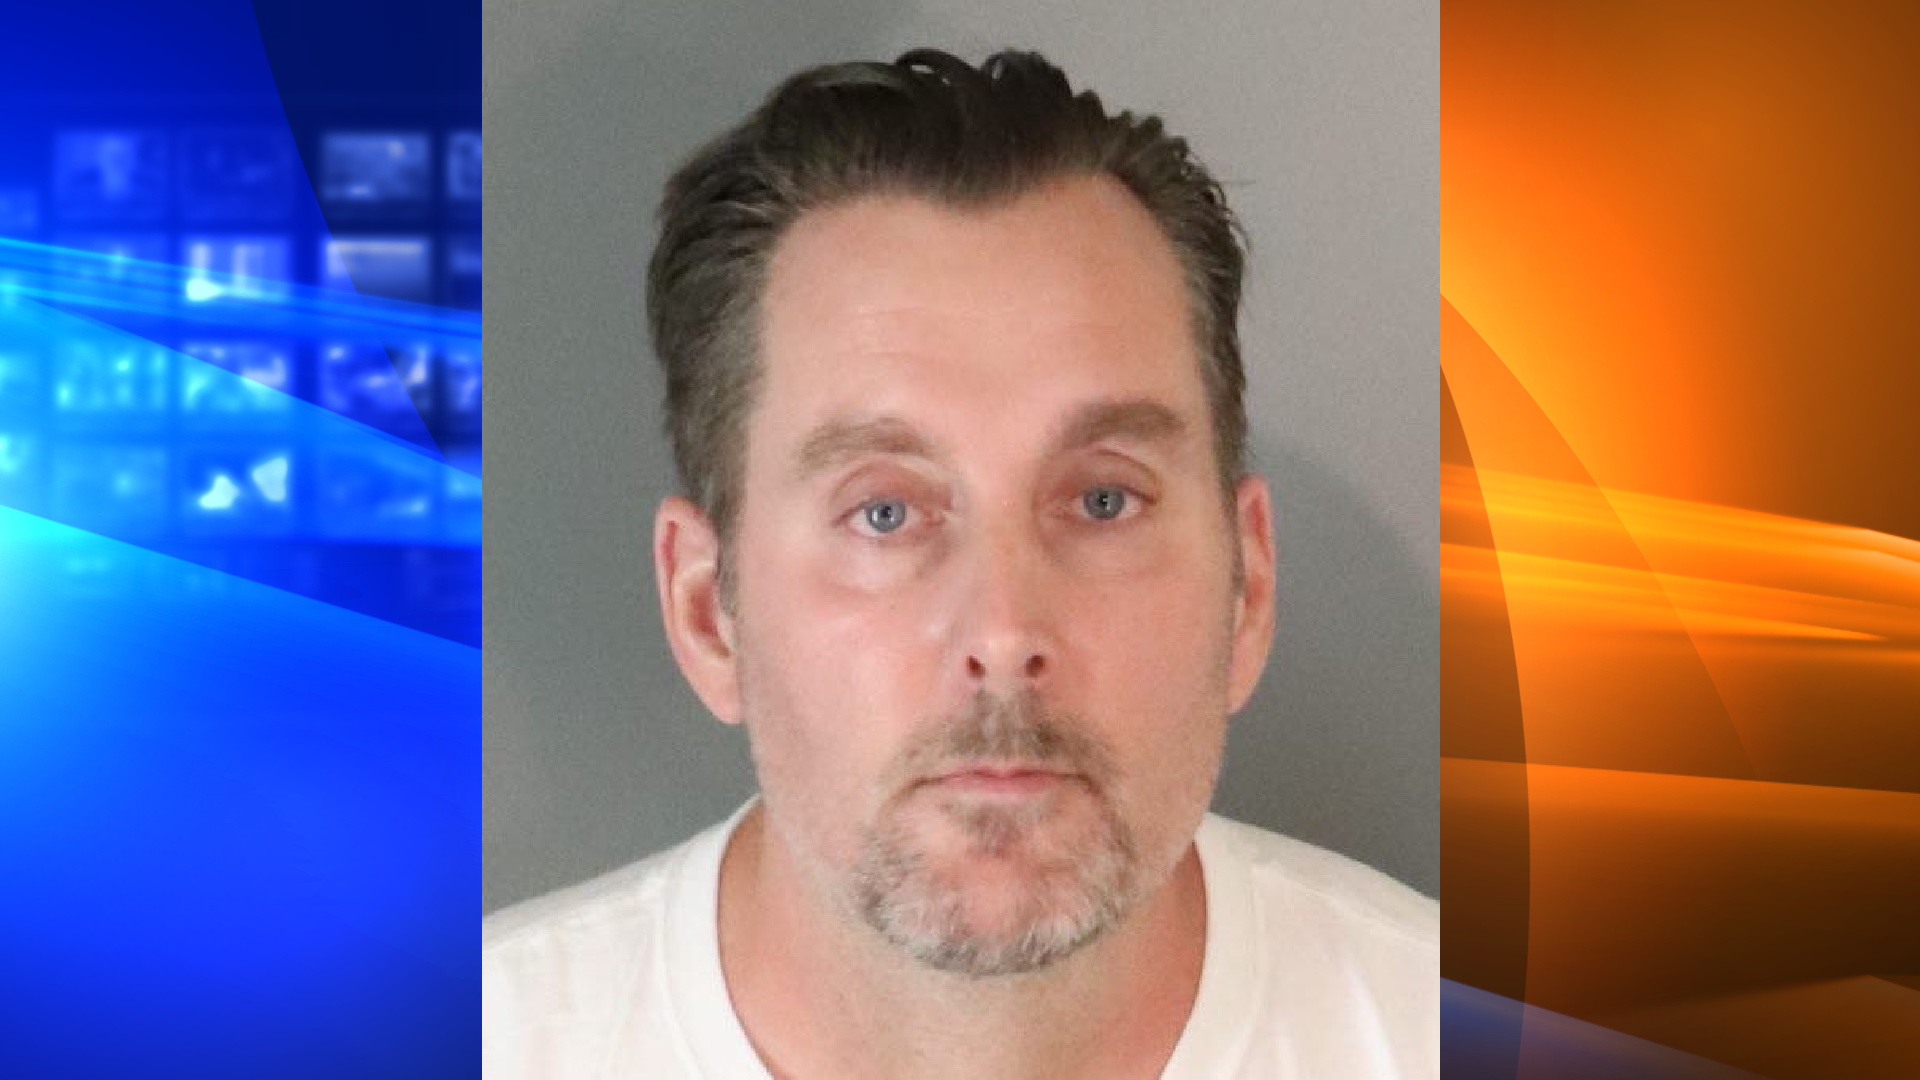 Ralph Leslie Kroll, 49, is seen in an undated booking photo released by the Riverside Police Department on Oct. 30, 2020.